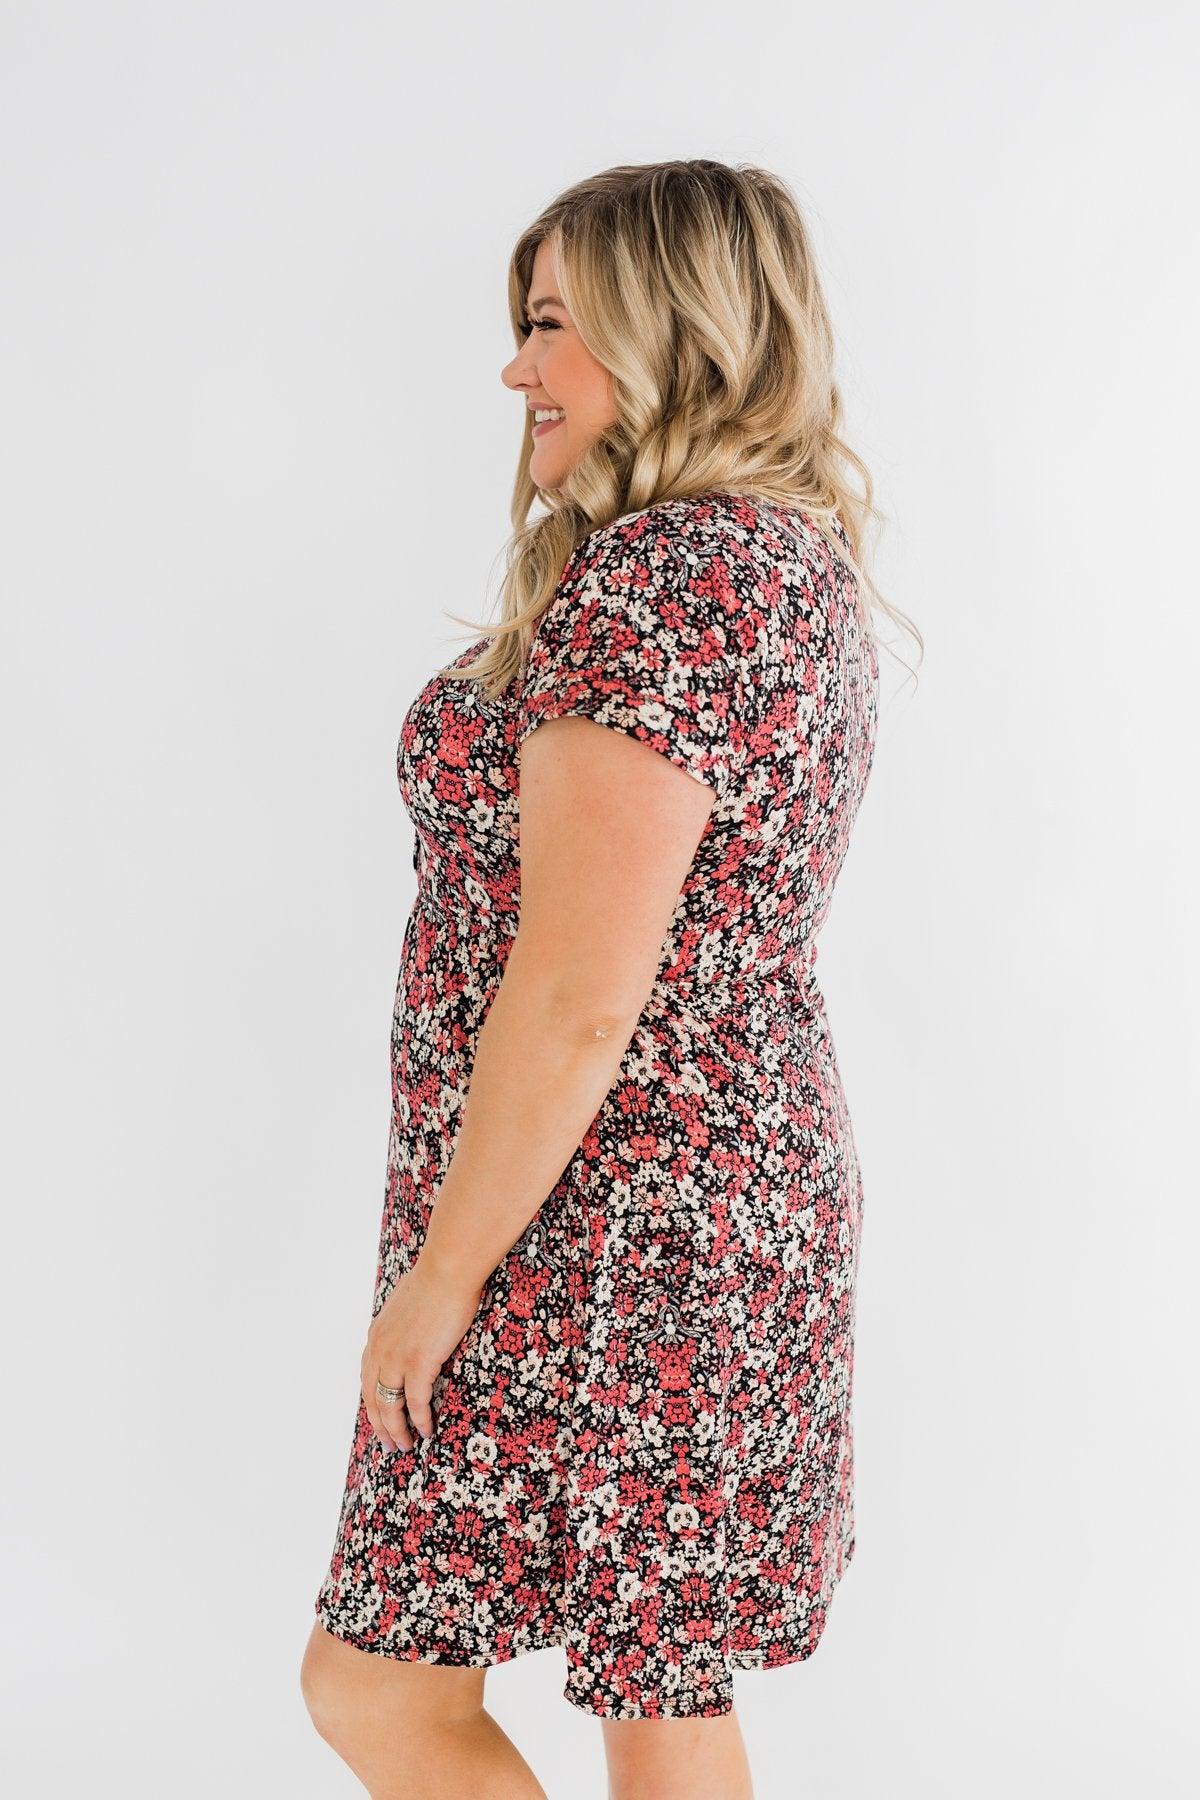 Just Say Yes Floral Button Dress- Black & Pink